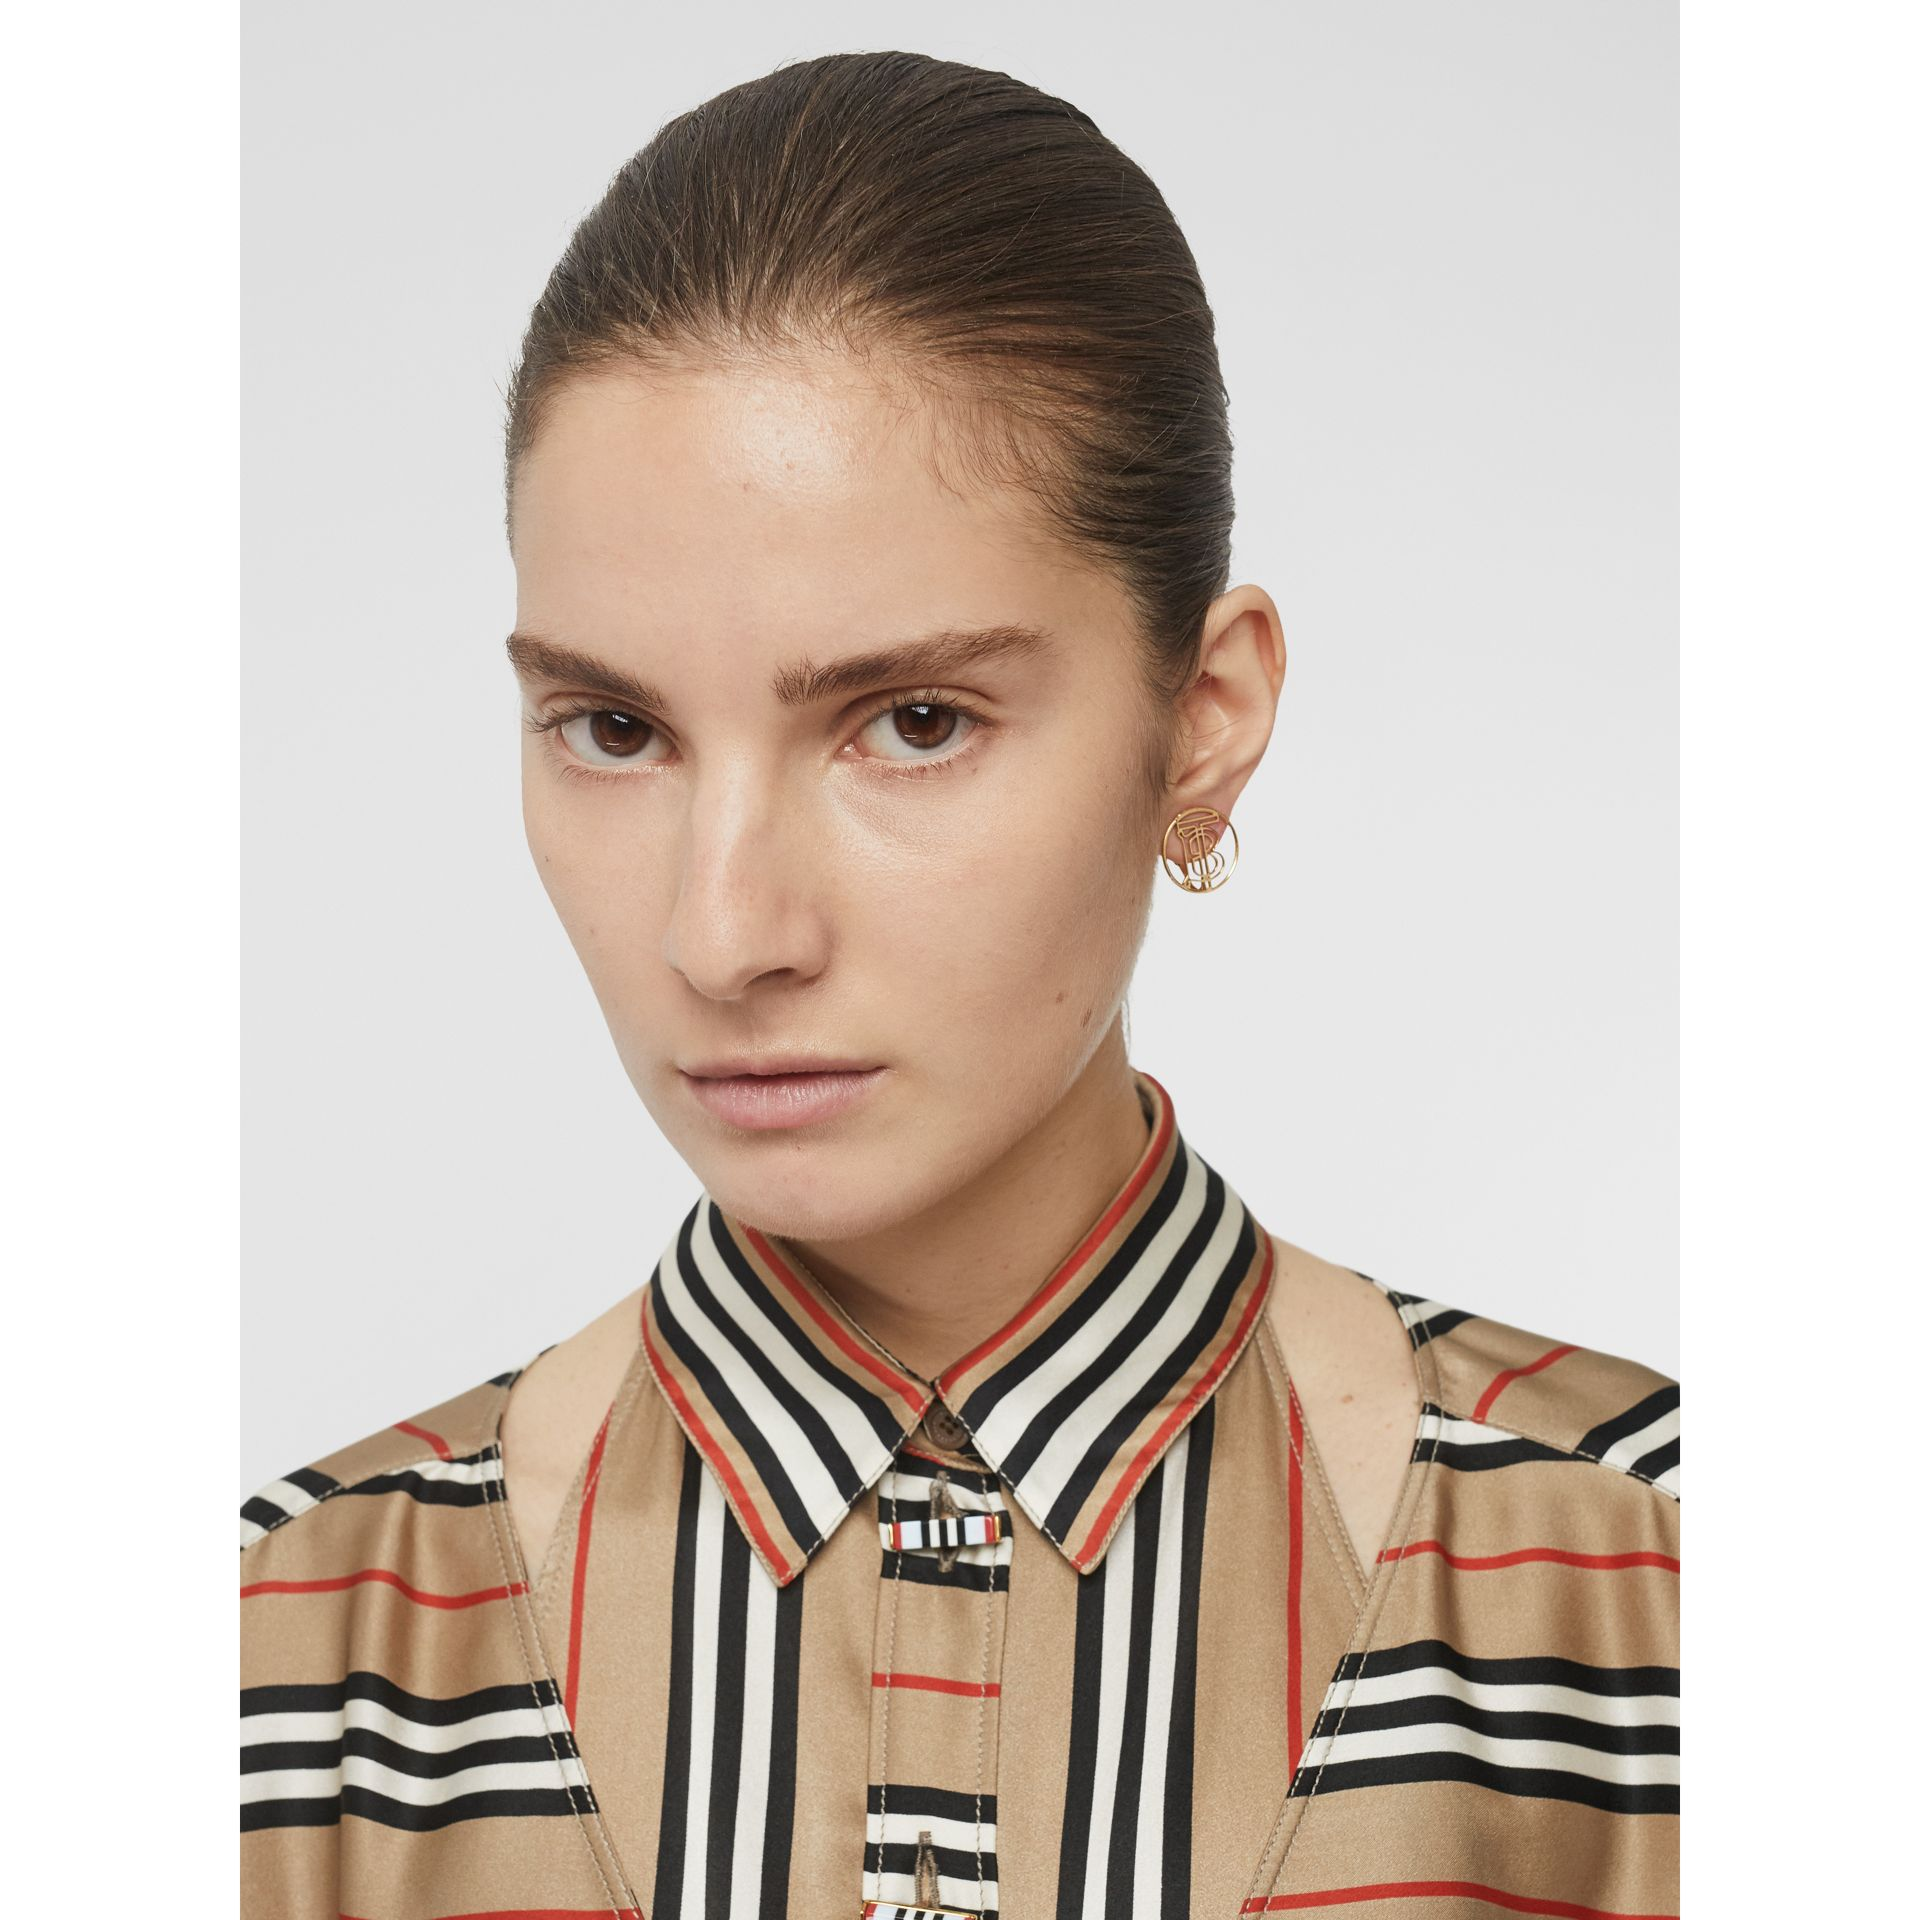 Cut-out Detail Icon Stripe Silk Oversized Shirt in Archive Beige - Women | Burberry - gallery image 5